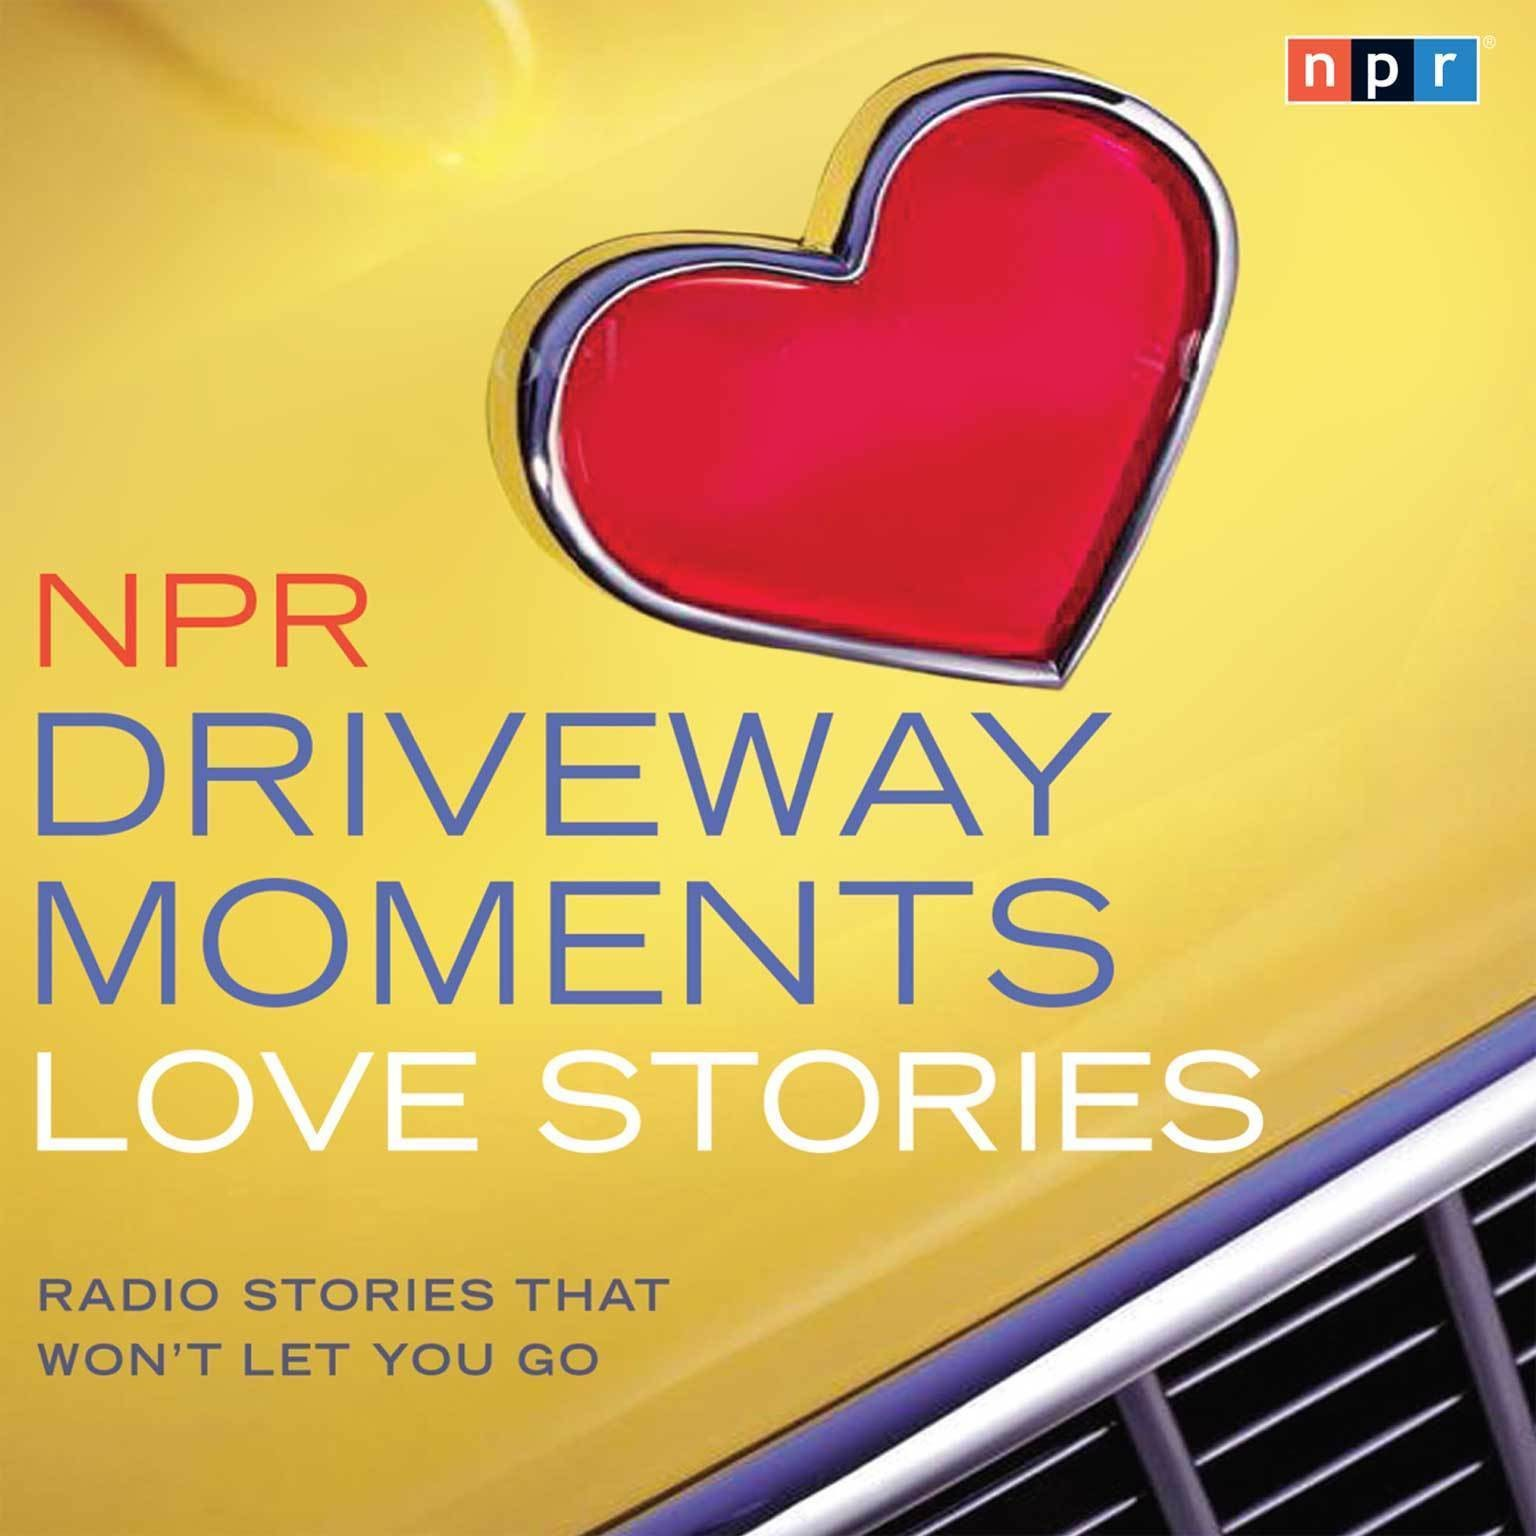 Printable NPR Driveway Moments Love Stories: Radio Stories That Won't Let You Go Audiobook Cover Art